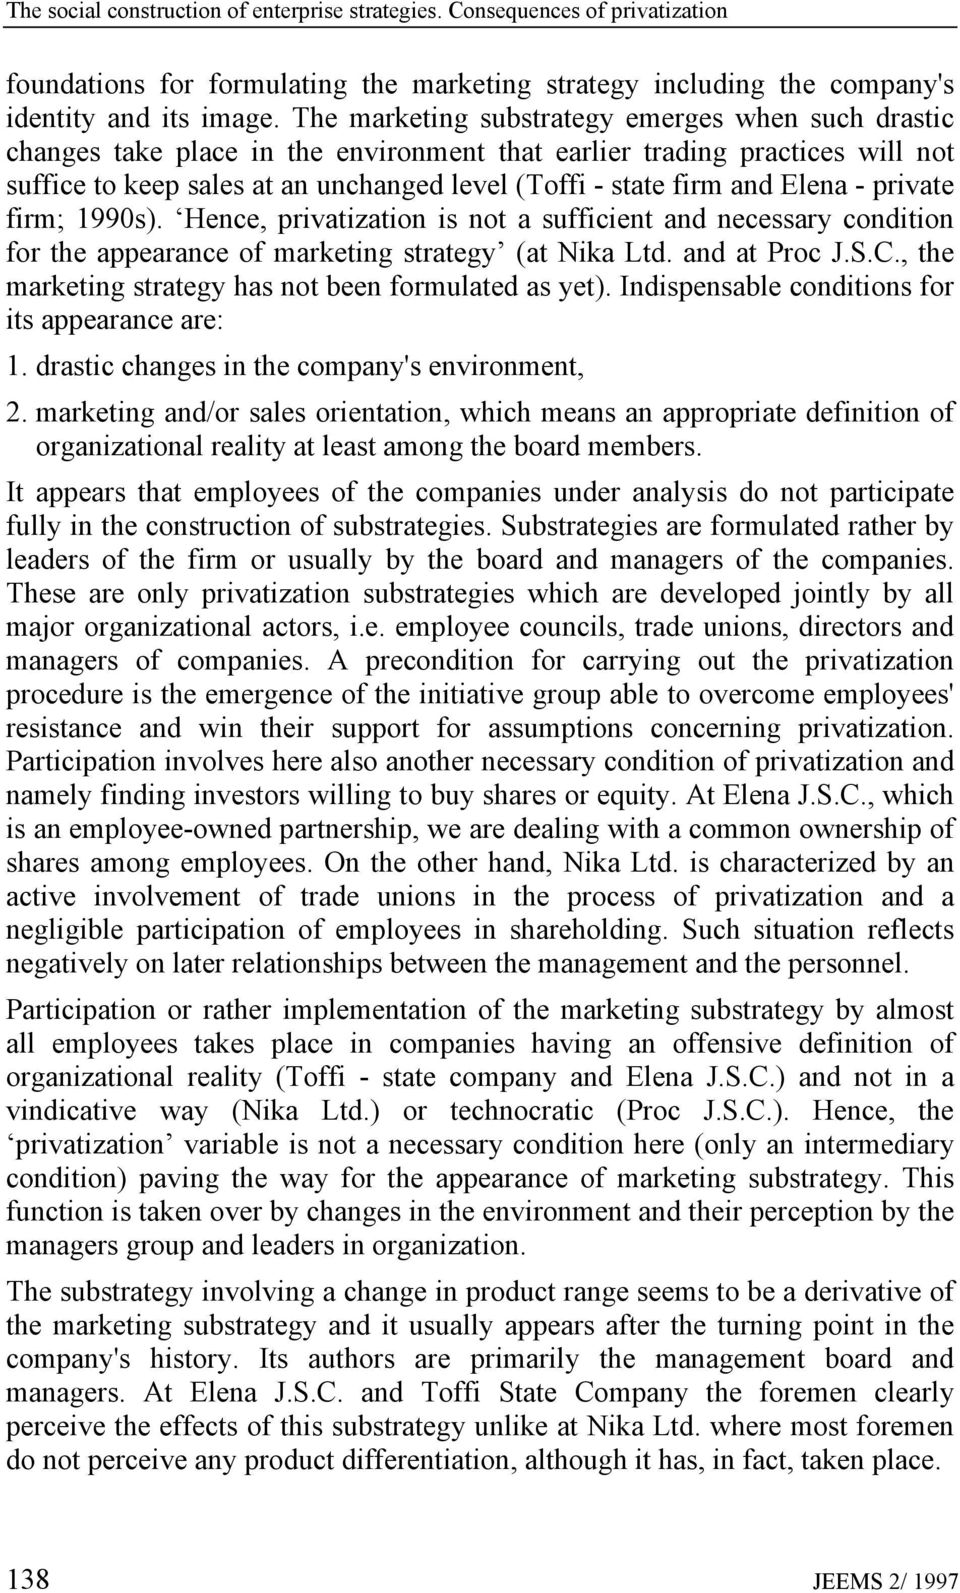 Elena - private firm; 1990s). Hence, privatization is not a sufficient and necessary condition for the appearance of marketing strategy (at Nika Ltd. and at Proc J.S.C.